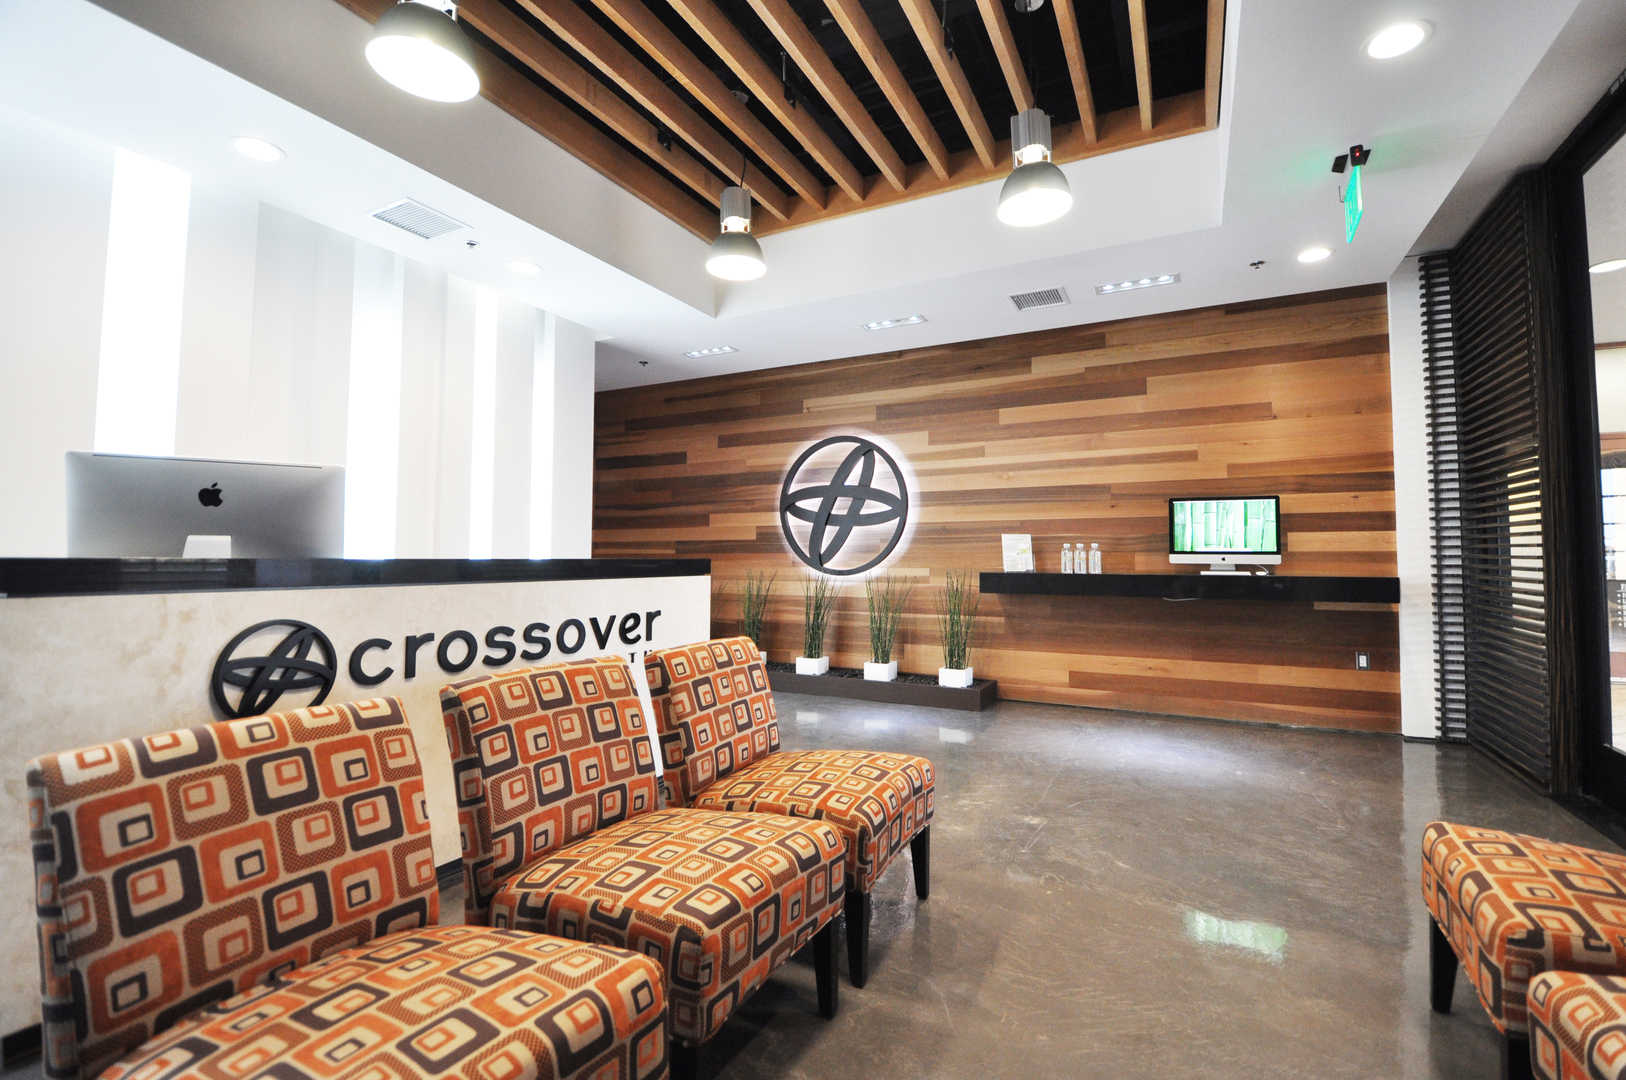 Crossover Office Lobby